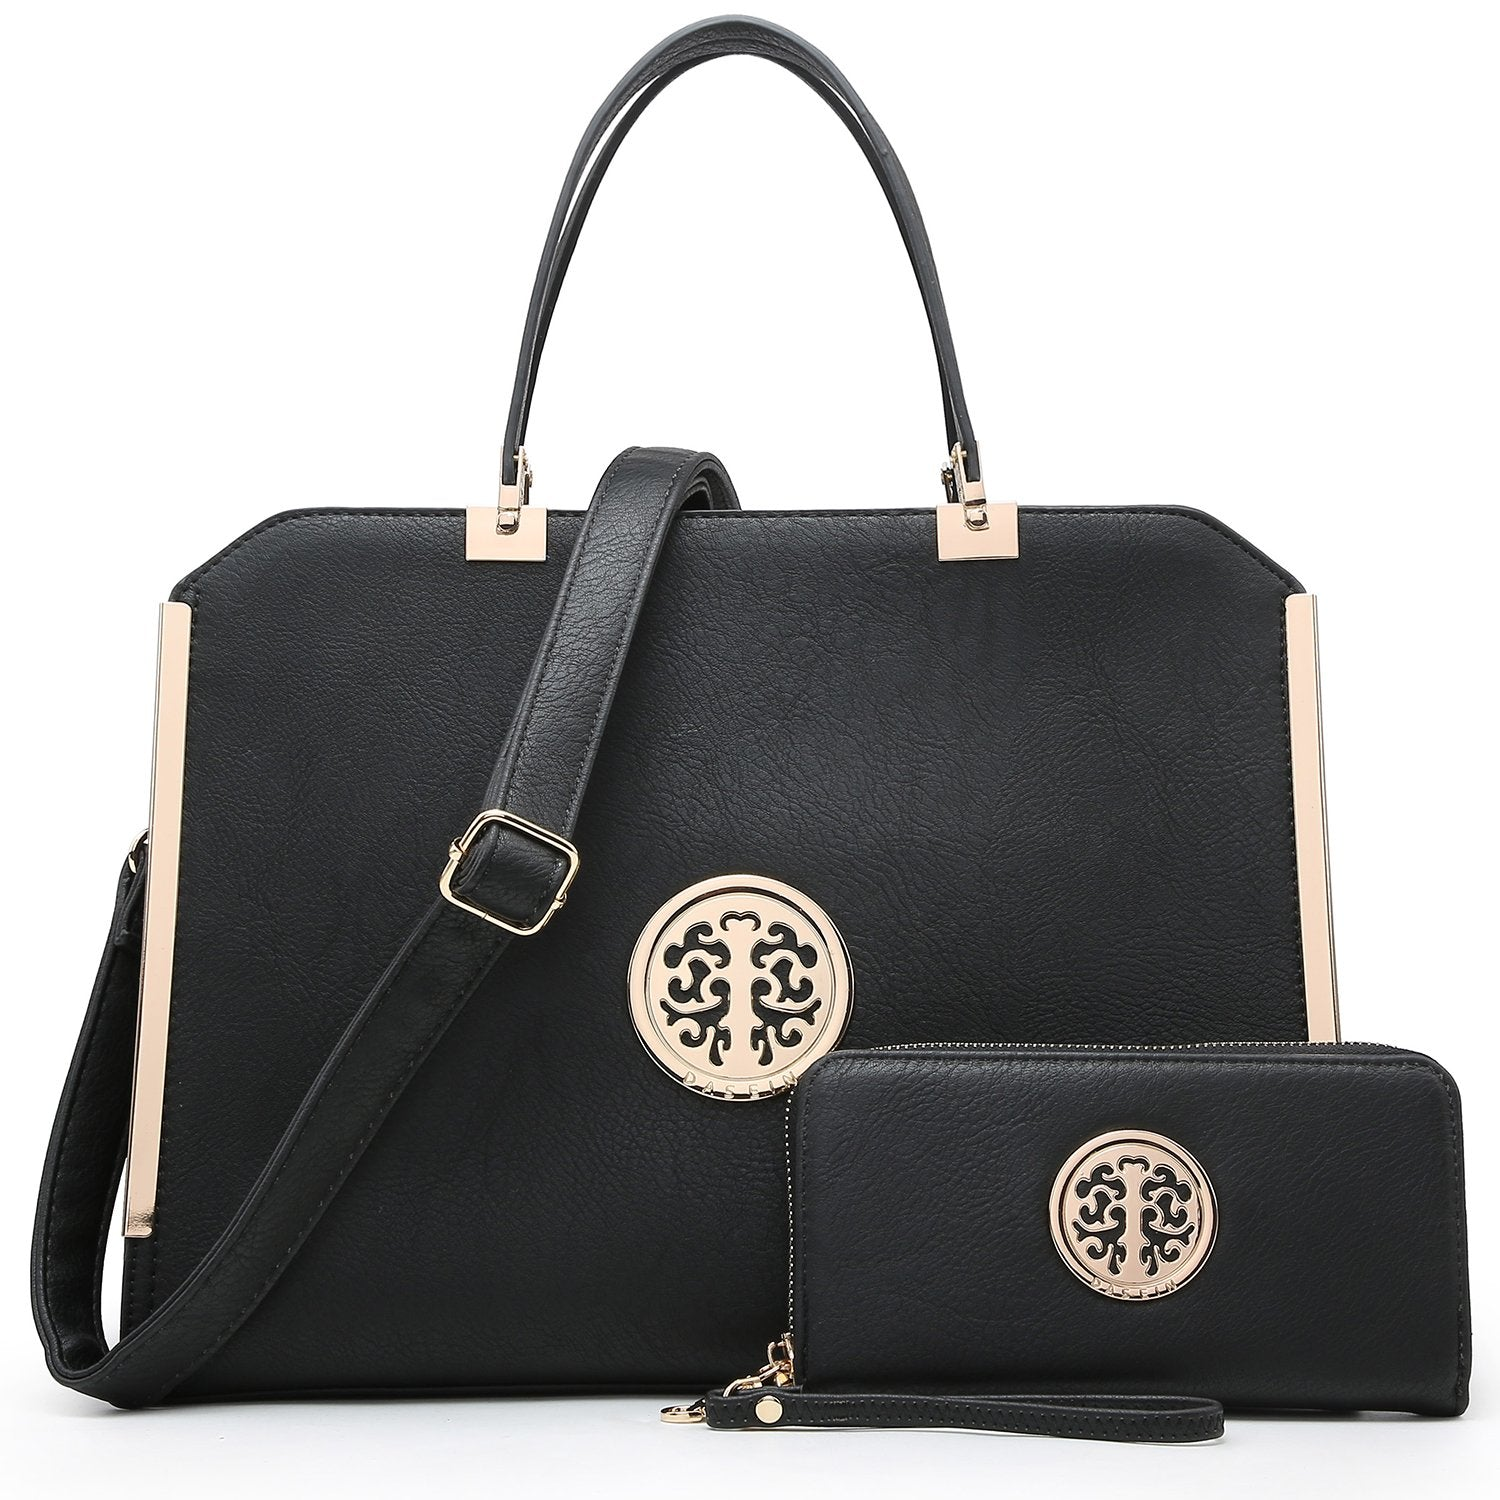 Metal Edged Emblem Handbag with Matching Wallet